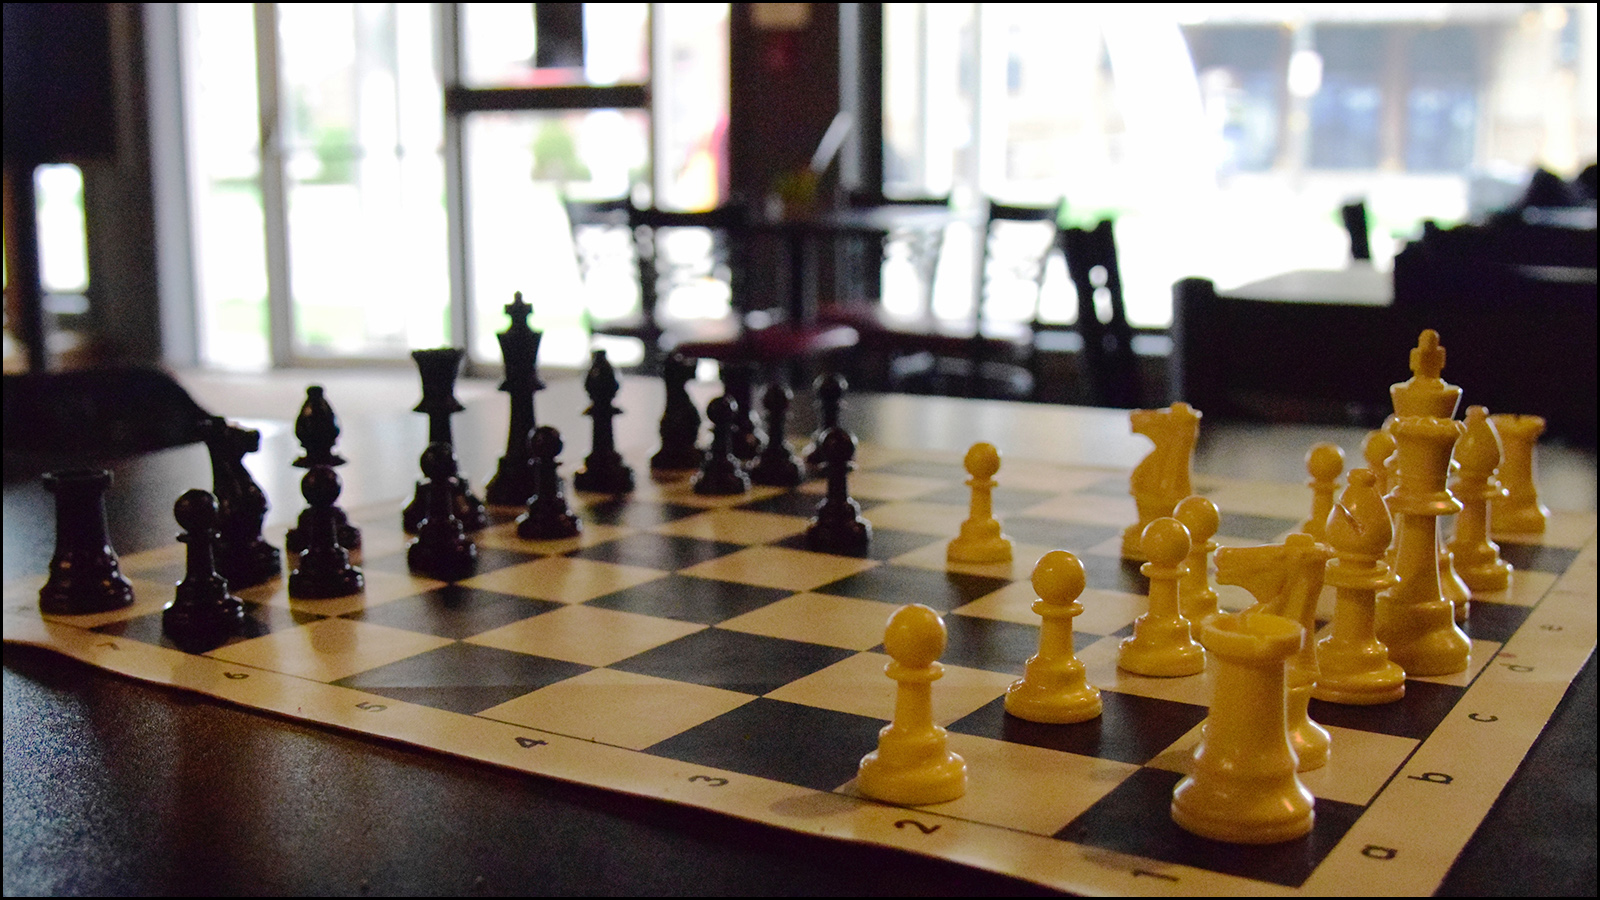 i like chess, but prefer backgammon. truth is, i don't run into many that play either in life (c) mark somple 2019